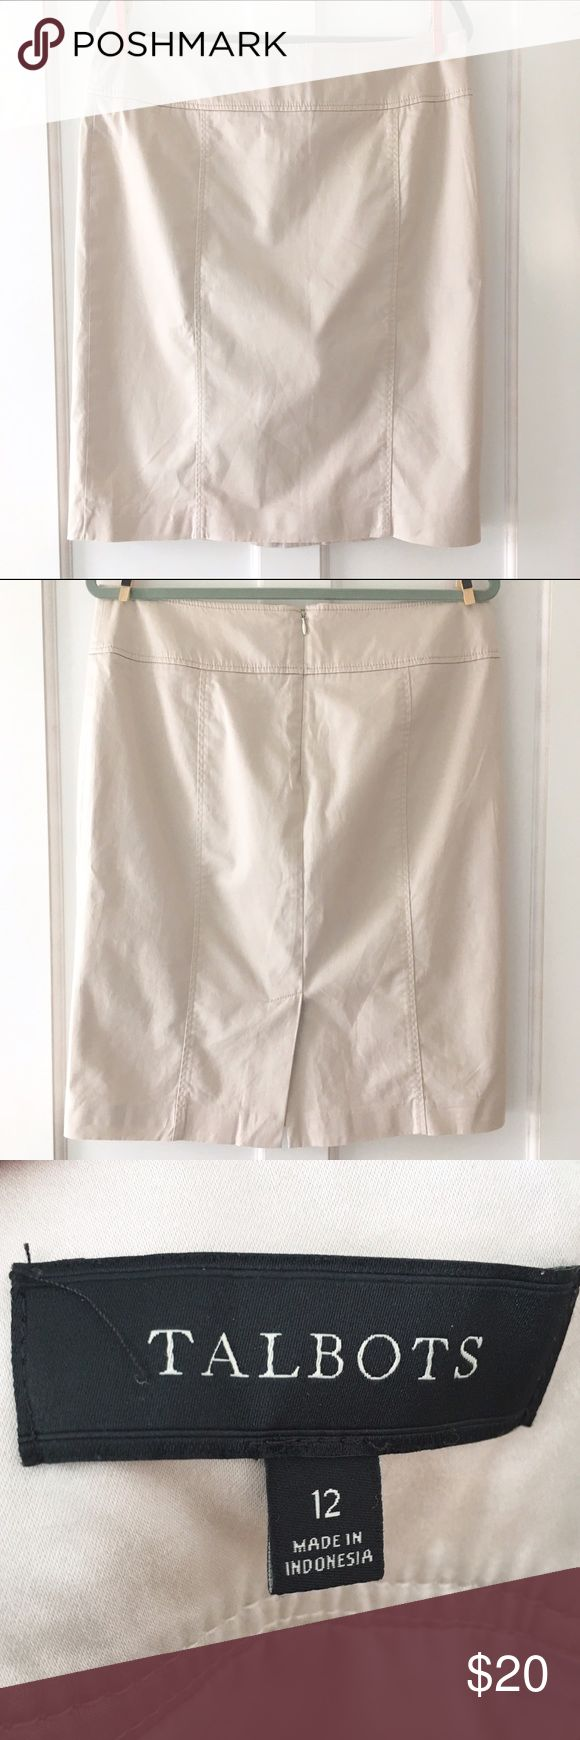 Talbots Khaki Pencil Skirt A classic! Talbots khaki pencil skirt. Fully lined, back zip. Like new. Talbots Skirts Pencil